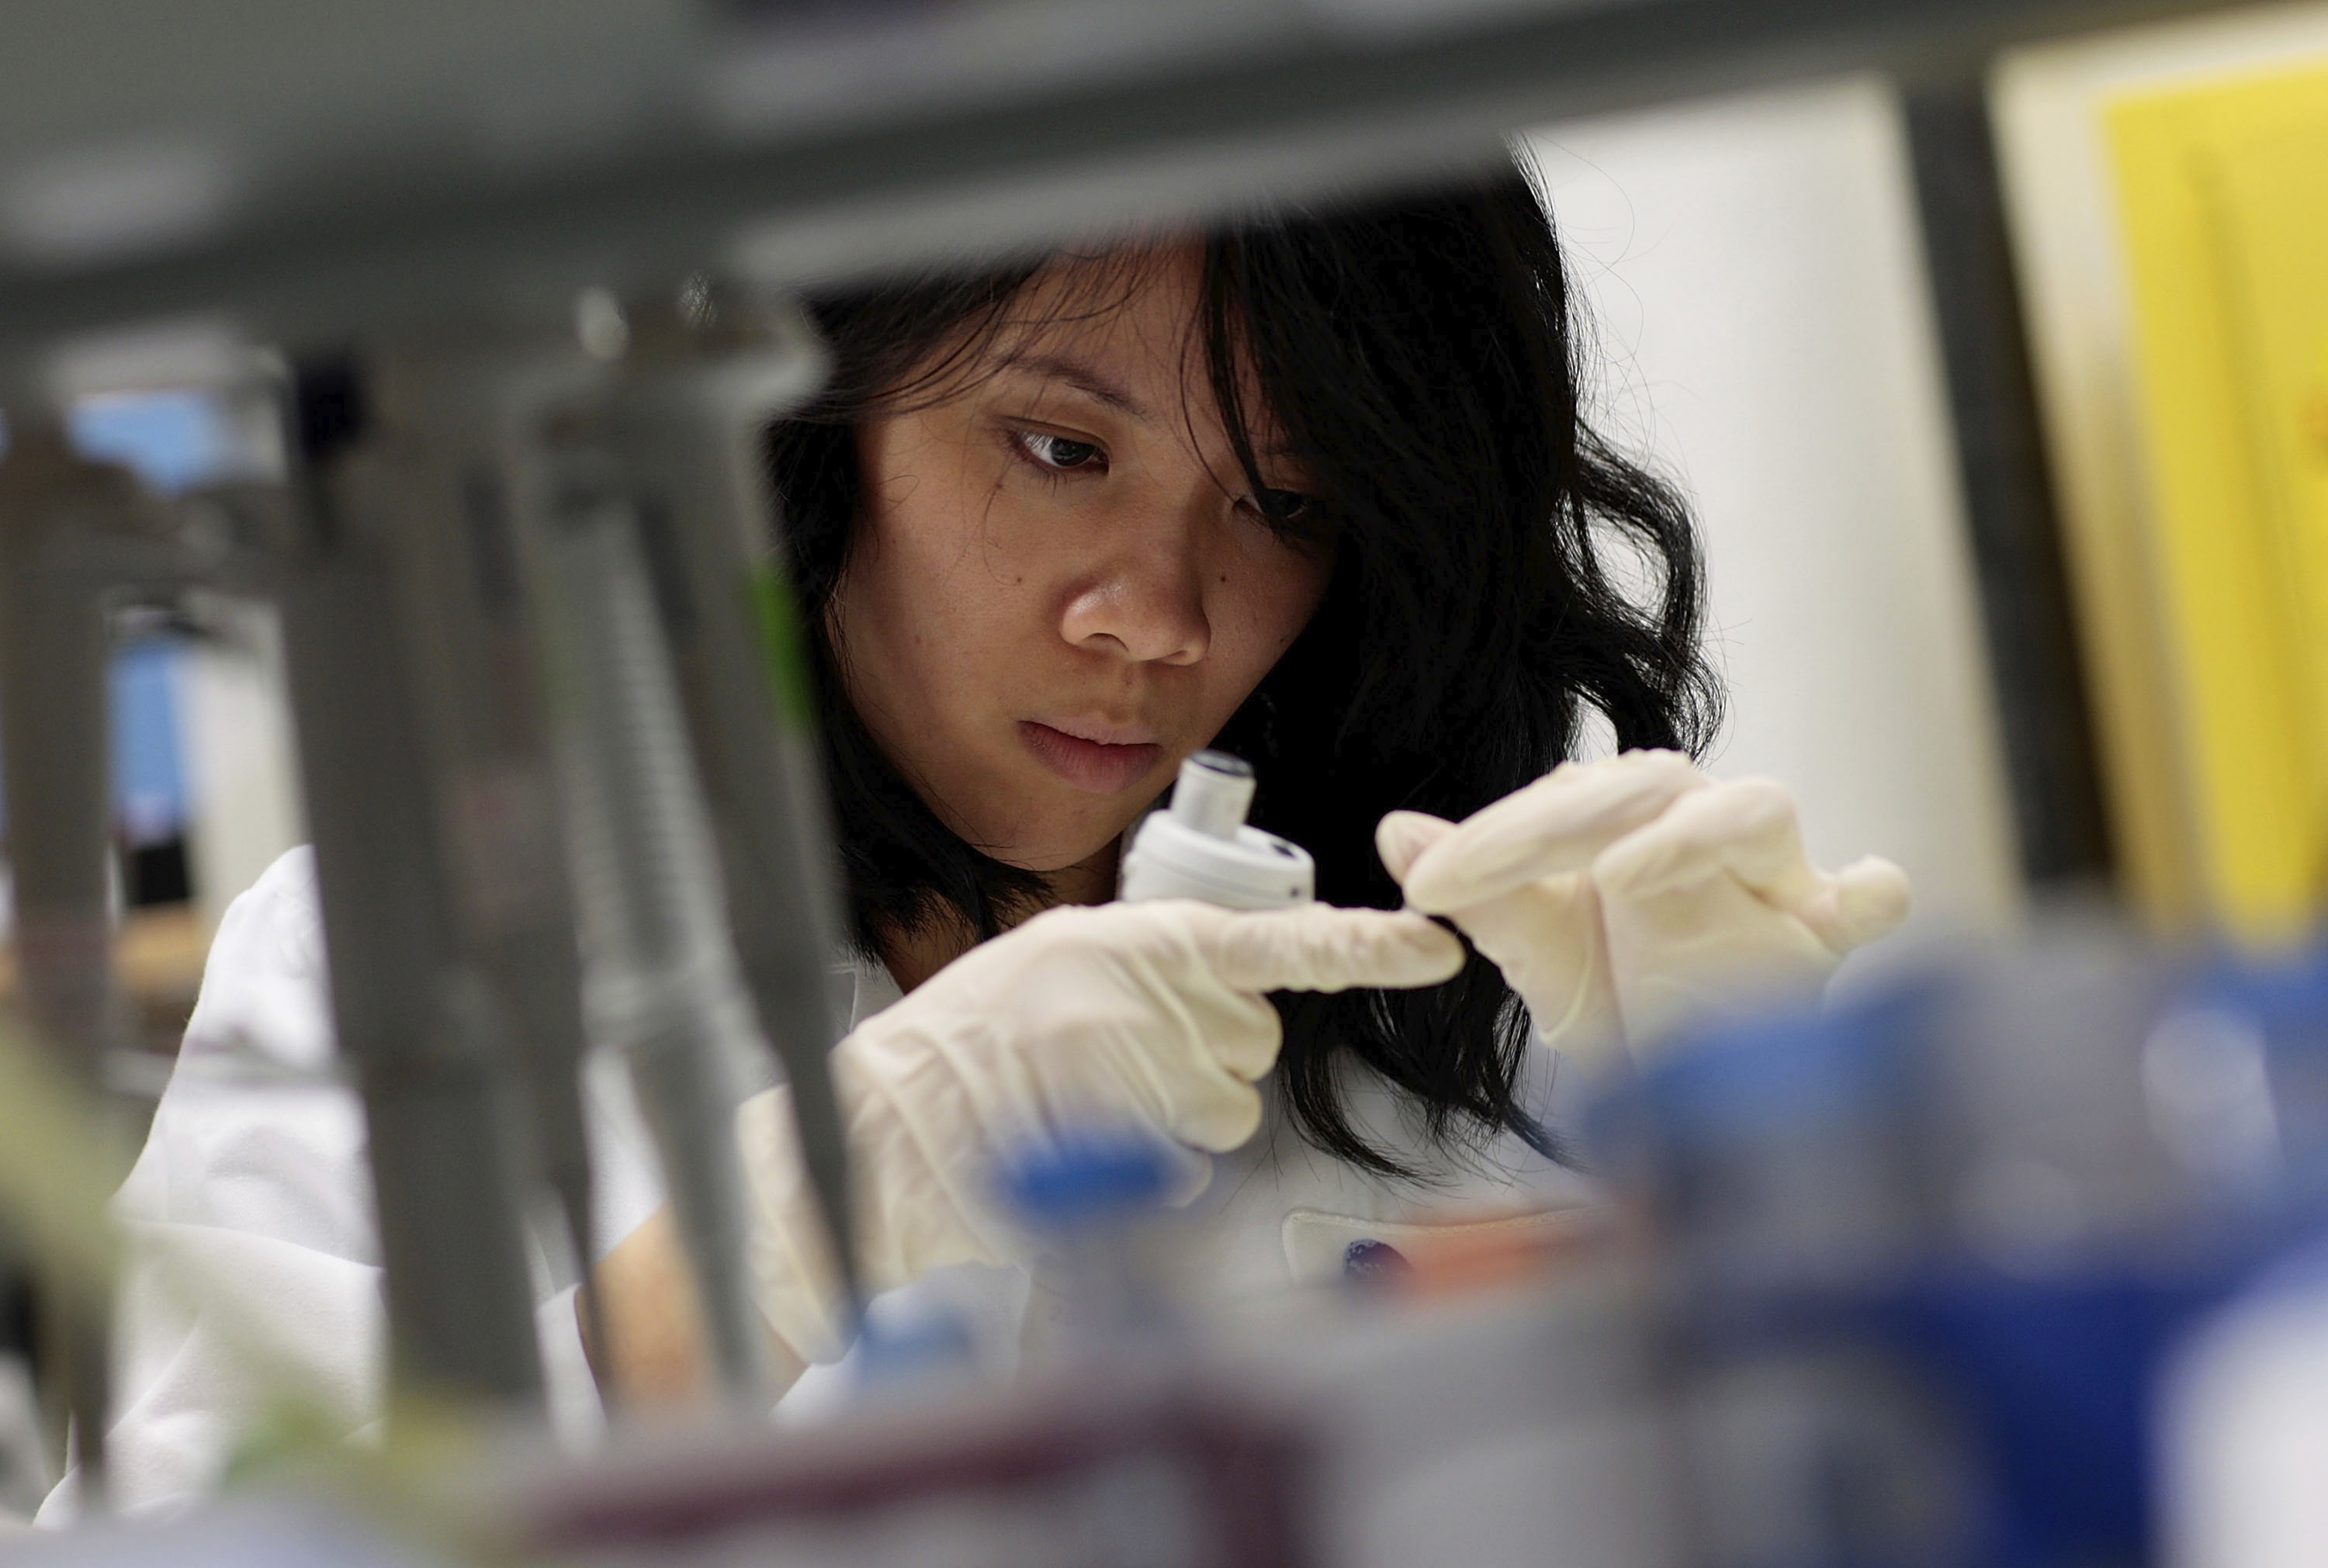 Hanh Nguyen, an intern with the Immunogen Design Group, works at the AIDS Vaccine Design and Development Laboratory in New York City.